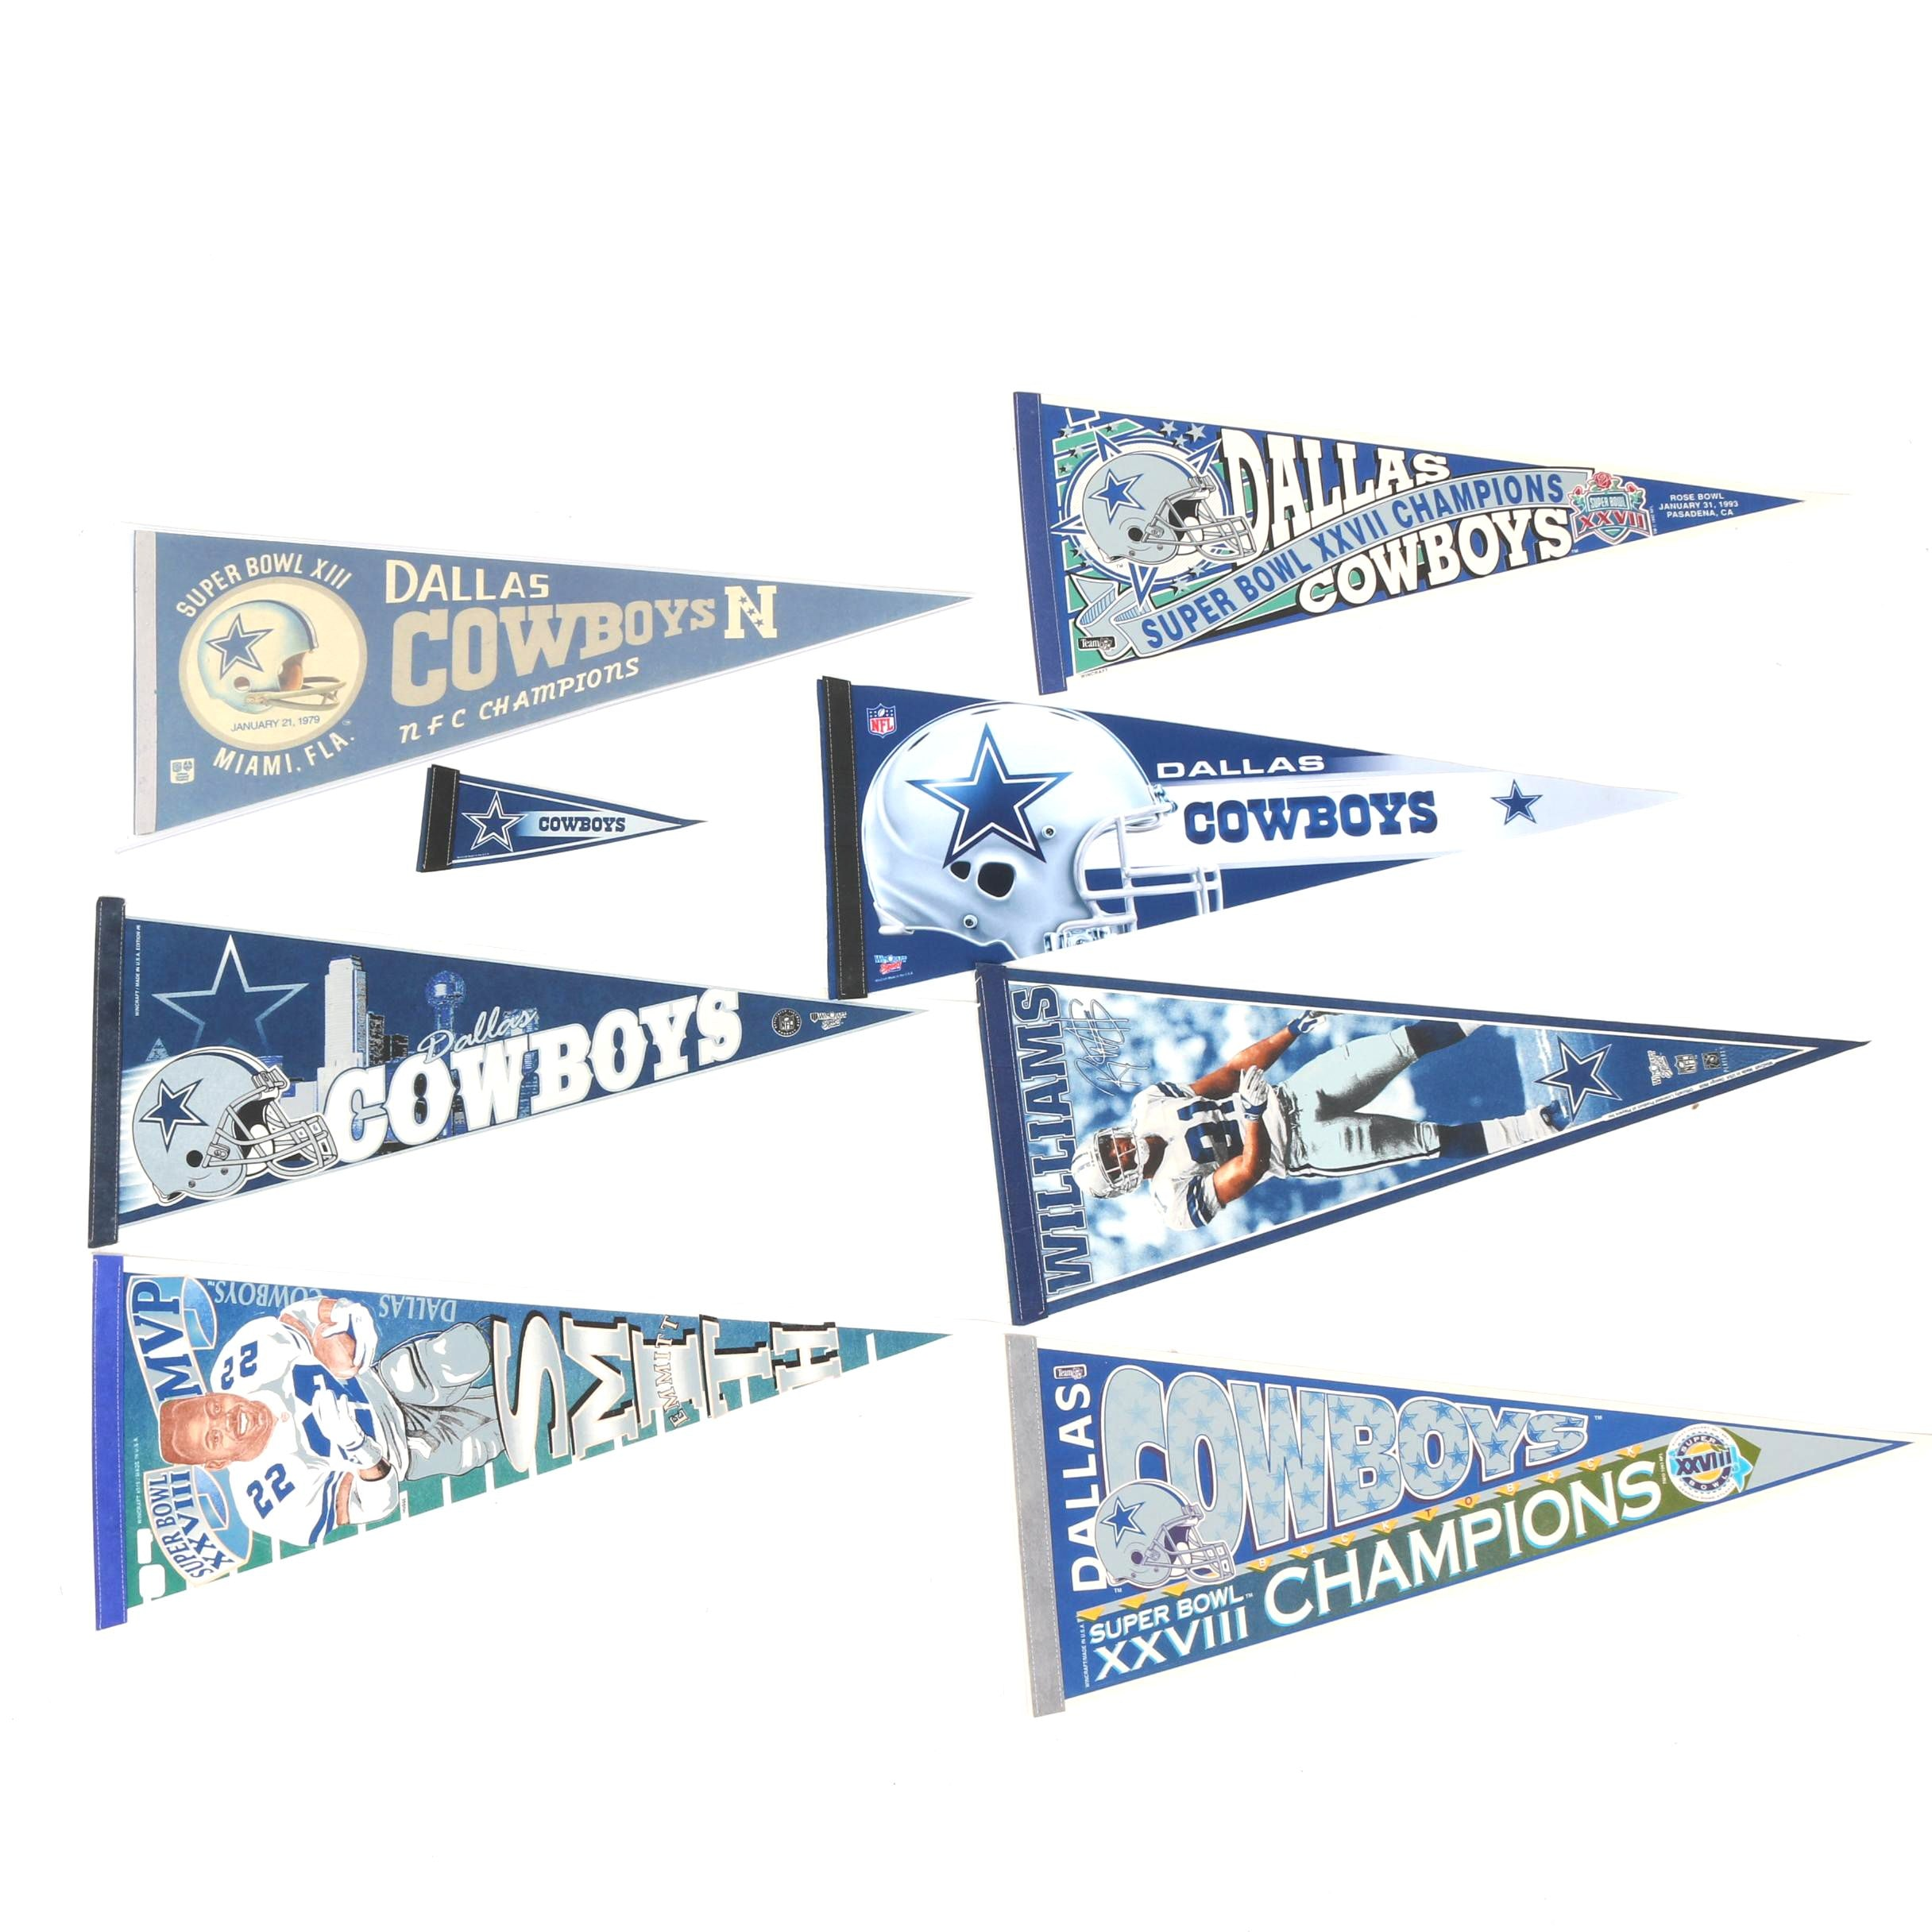 Dallas Cowboys Pennants Including Vintage Superbowl XIII Pennant